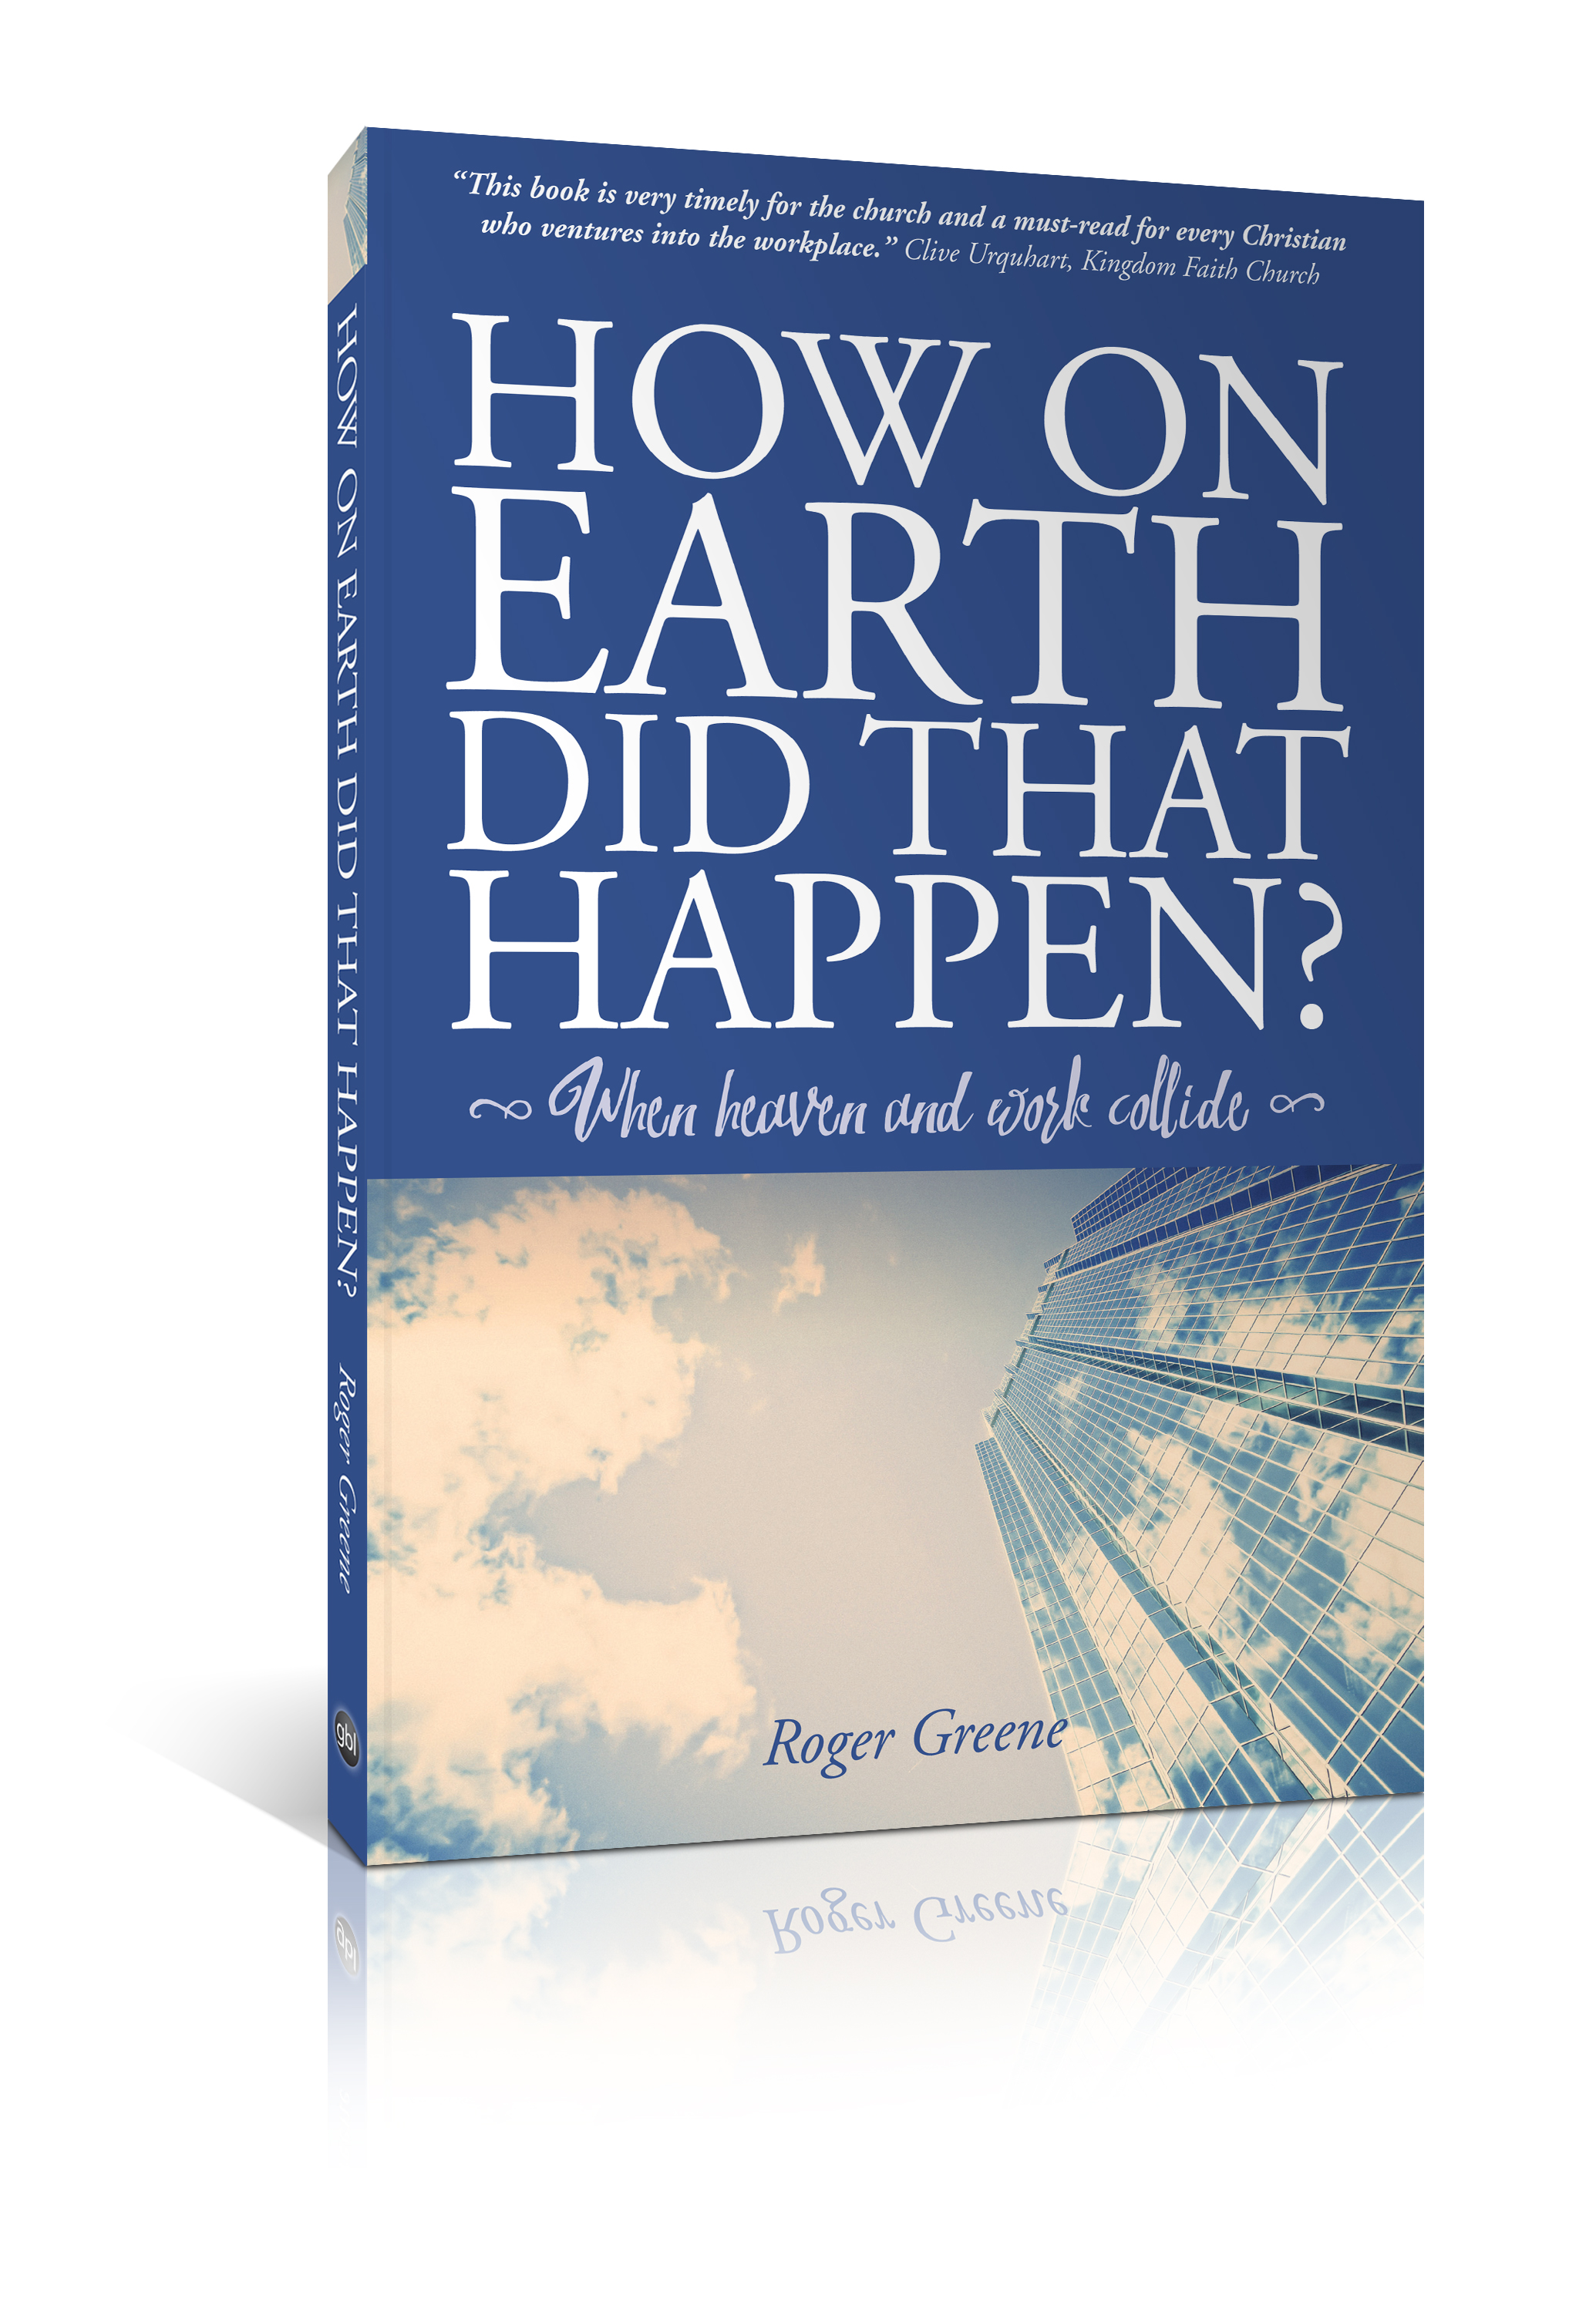 How On Earth Did That Happen?, by Roger Greene